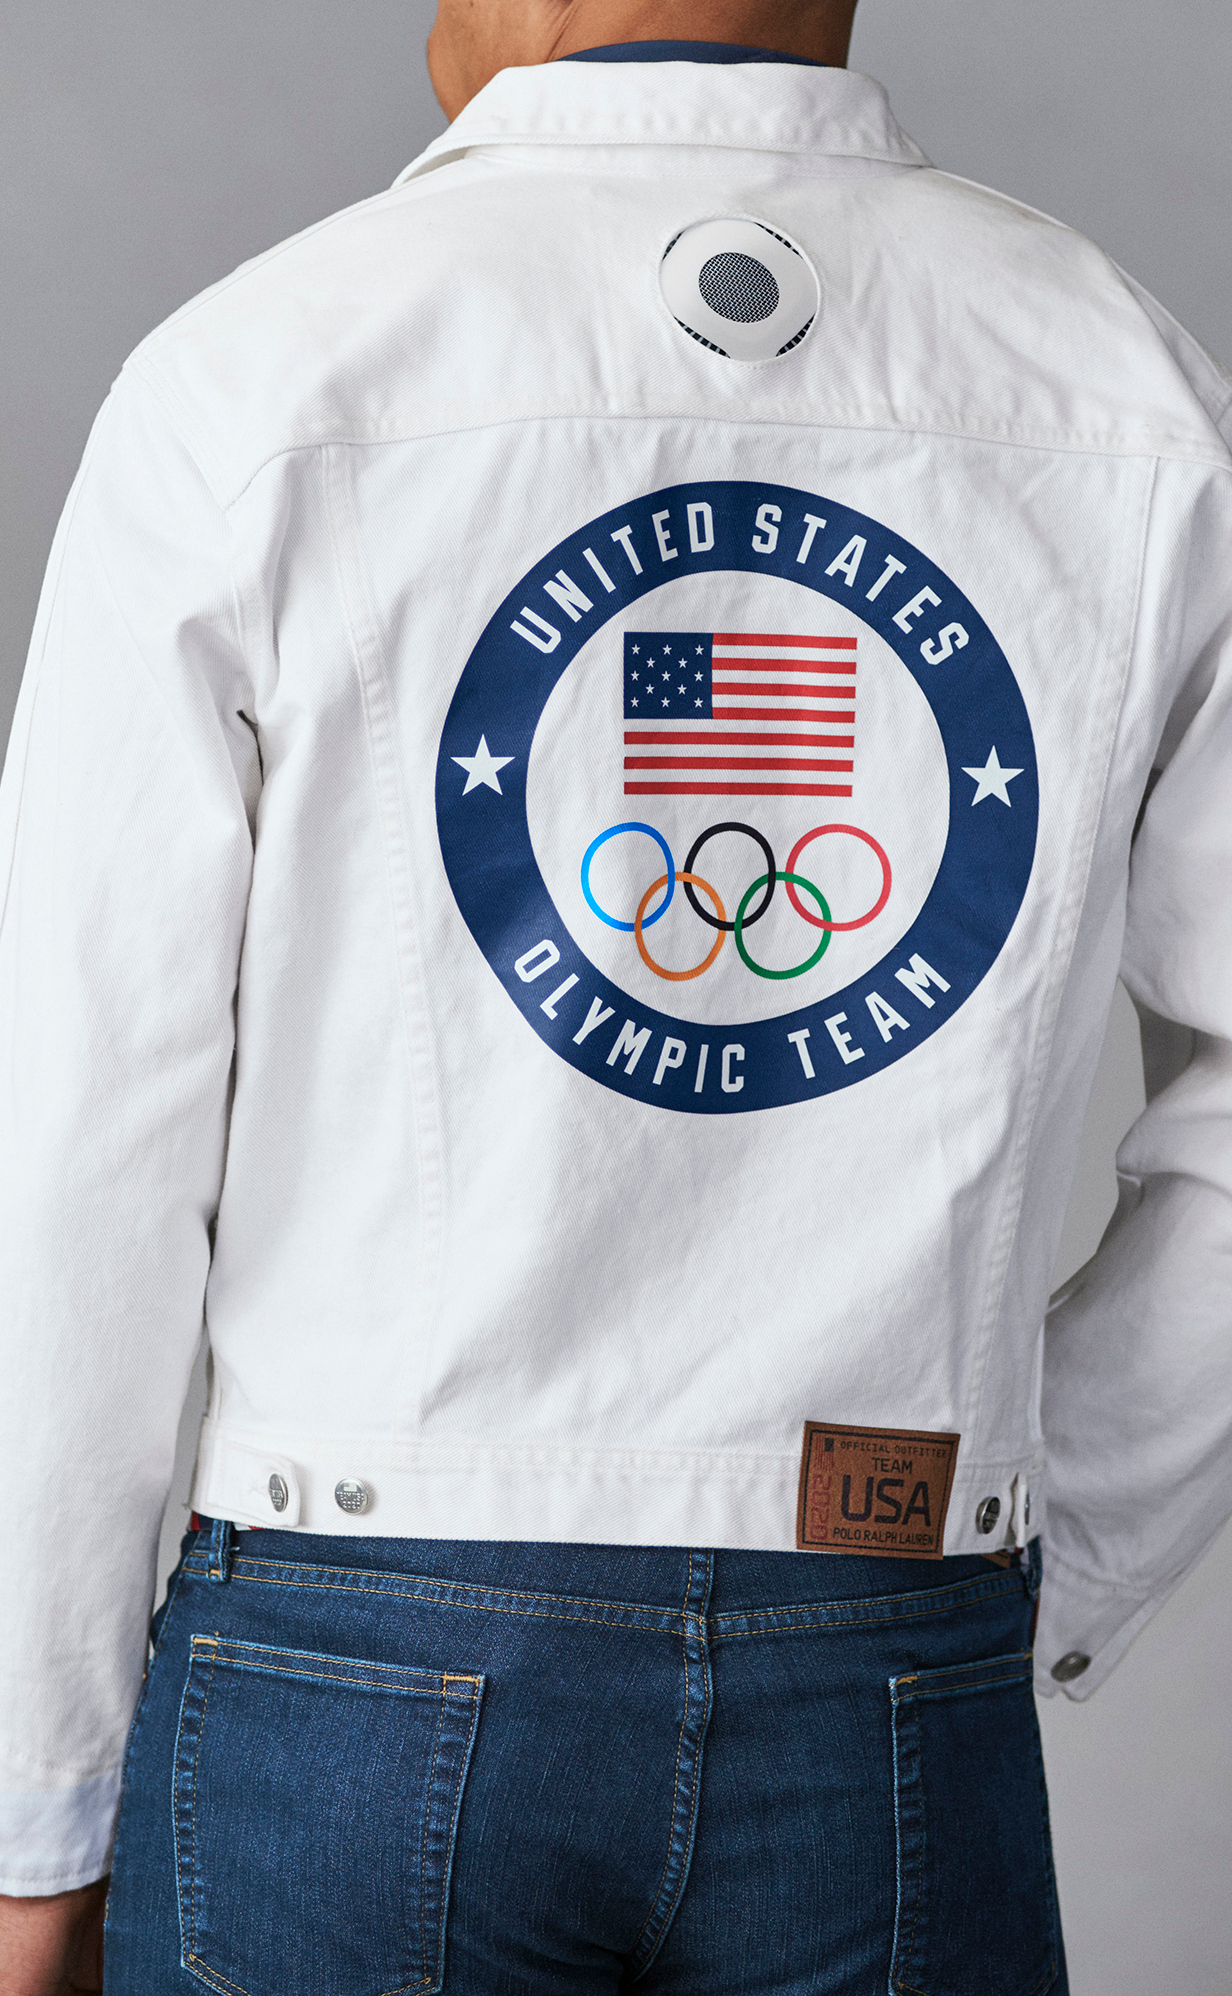 Ralph Lauren added its new RL Cooling wearable technology into the jacket of the Team USA member who will parade with the American flag.